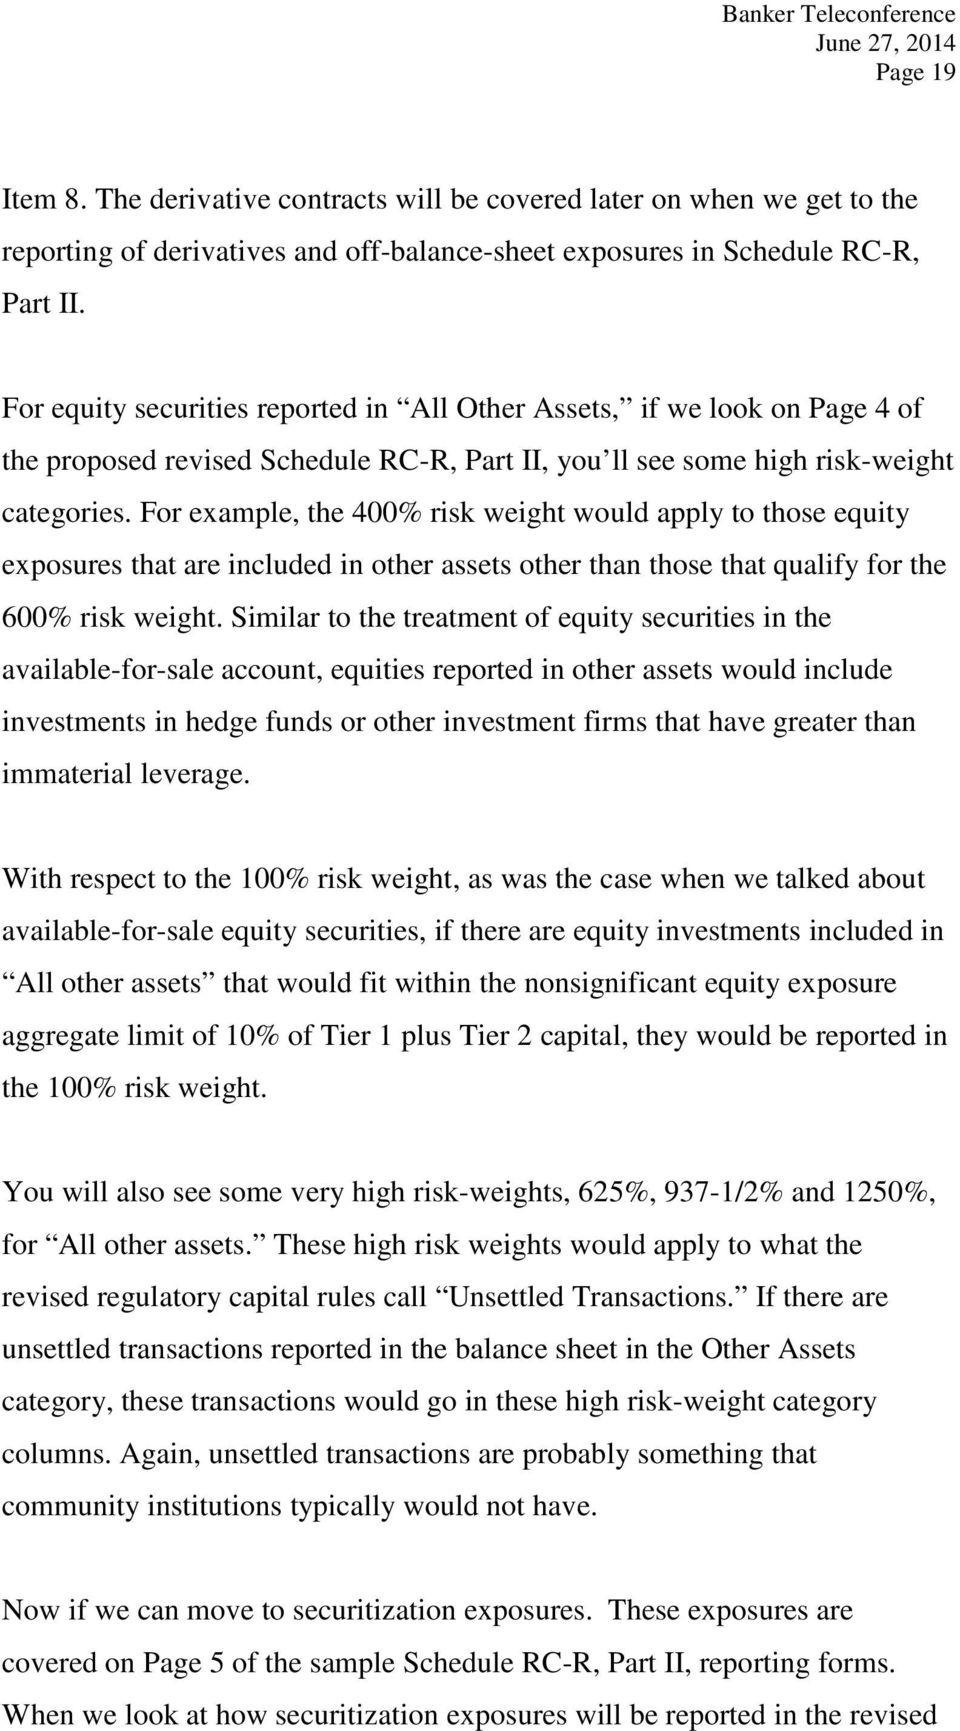 For example, the 400% risk weight would apply to those equity exposures that are included in other assets other than those that qualify for the 600% risk weight.